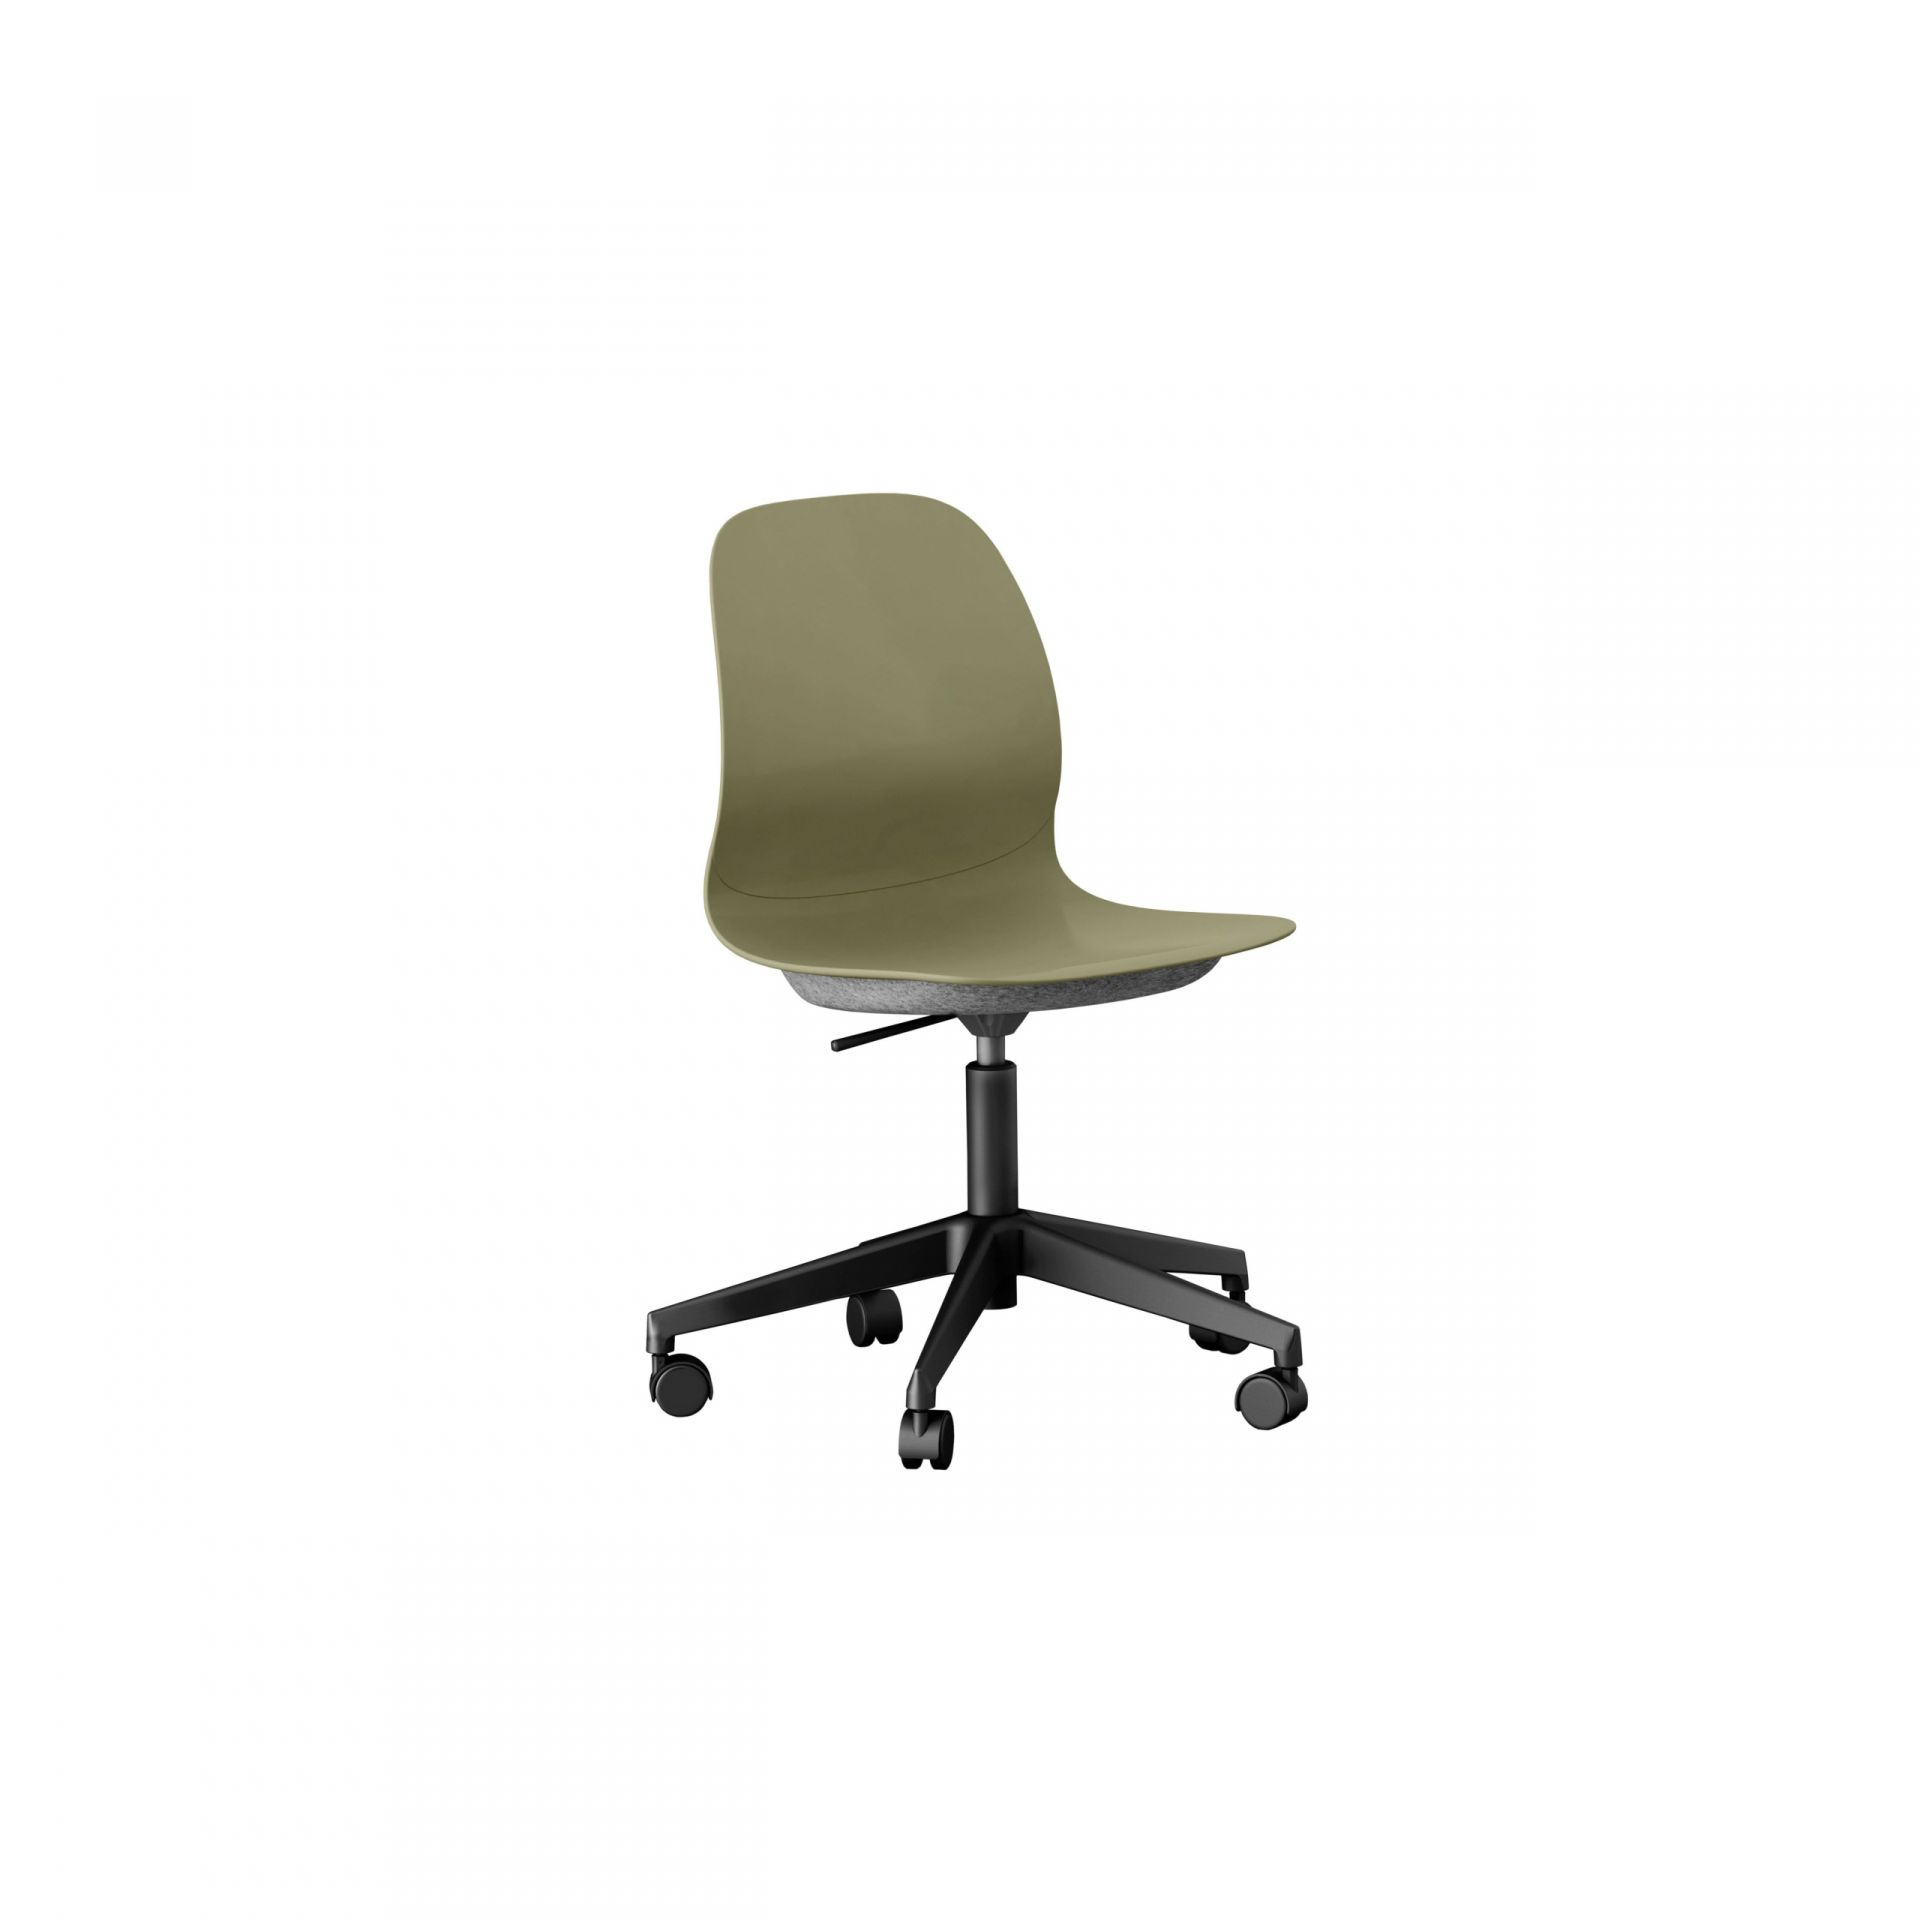 Archie Chair with swivel base product image 2